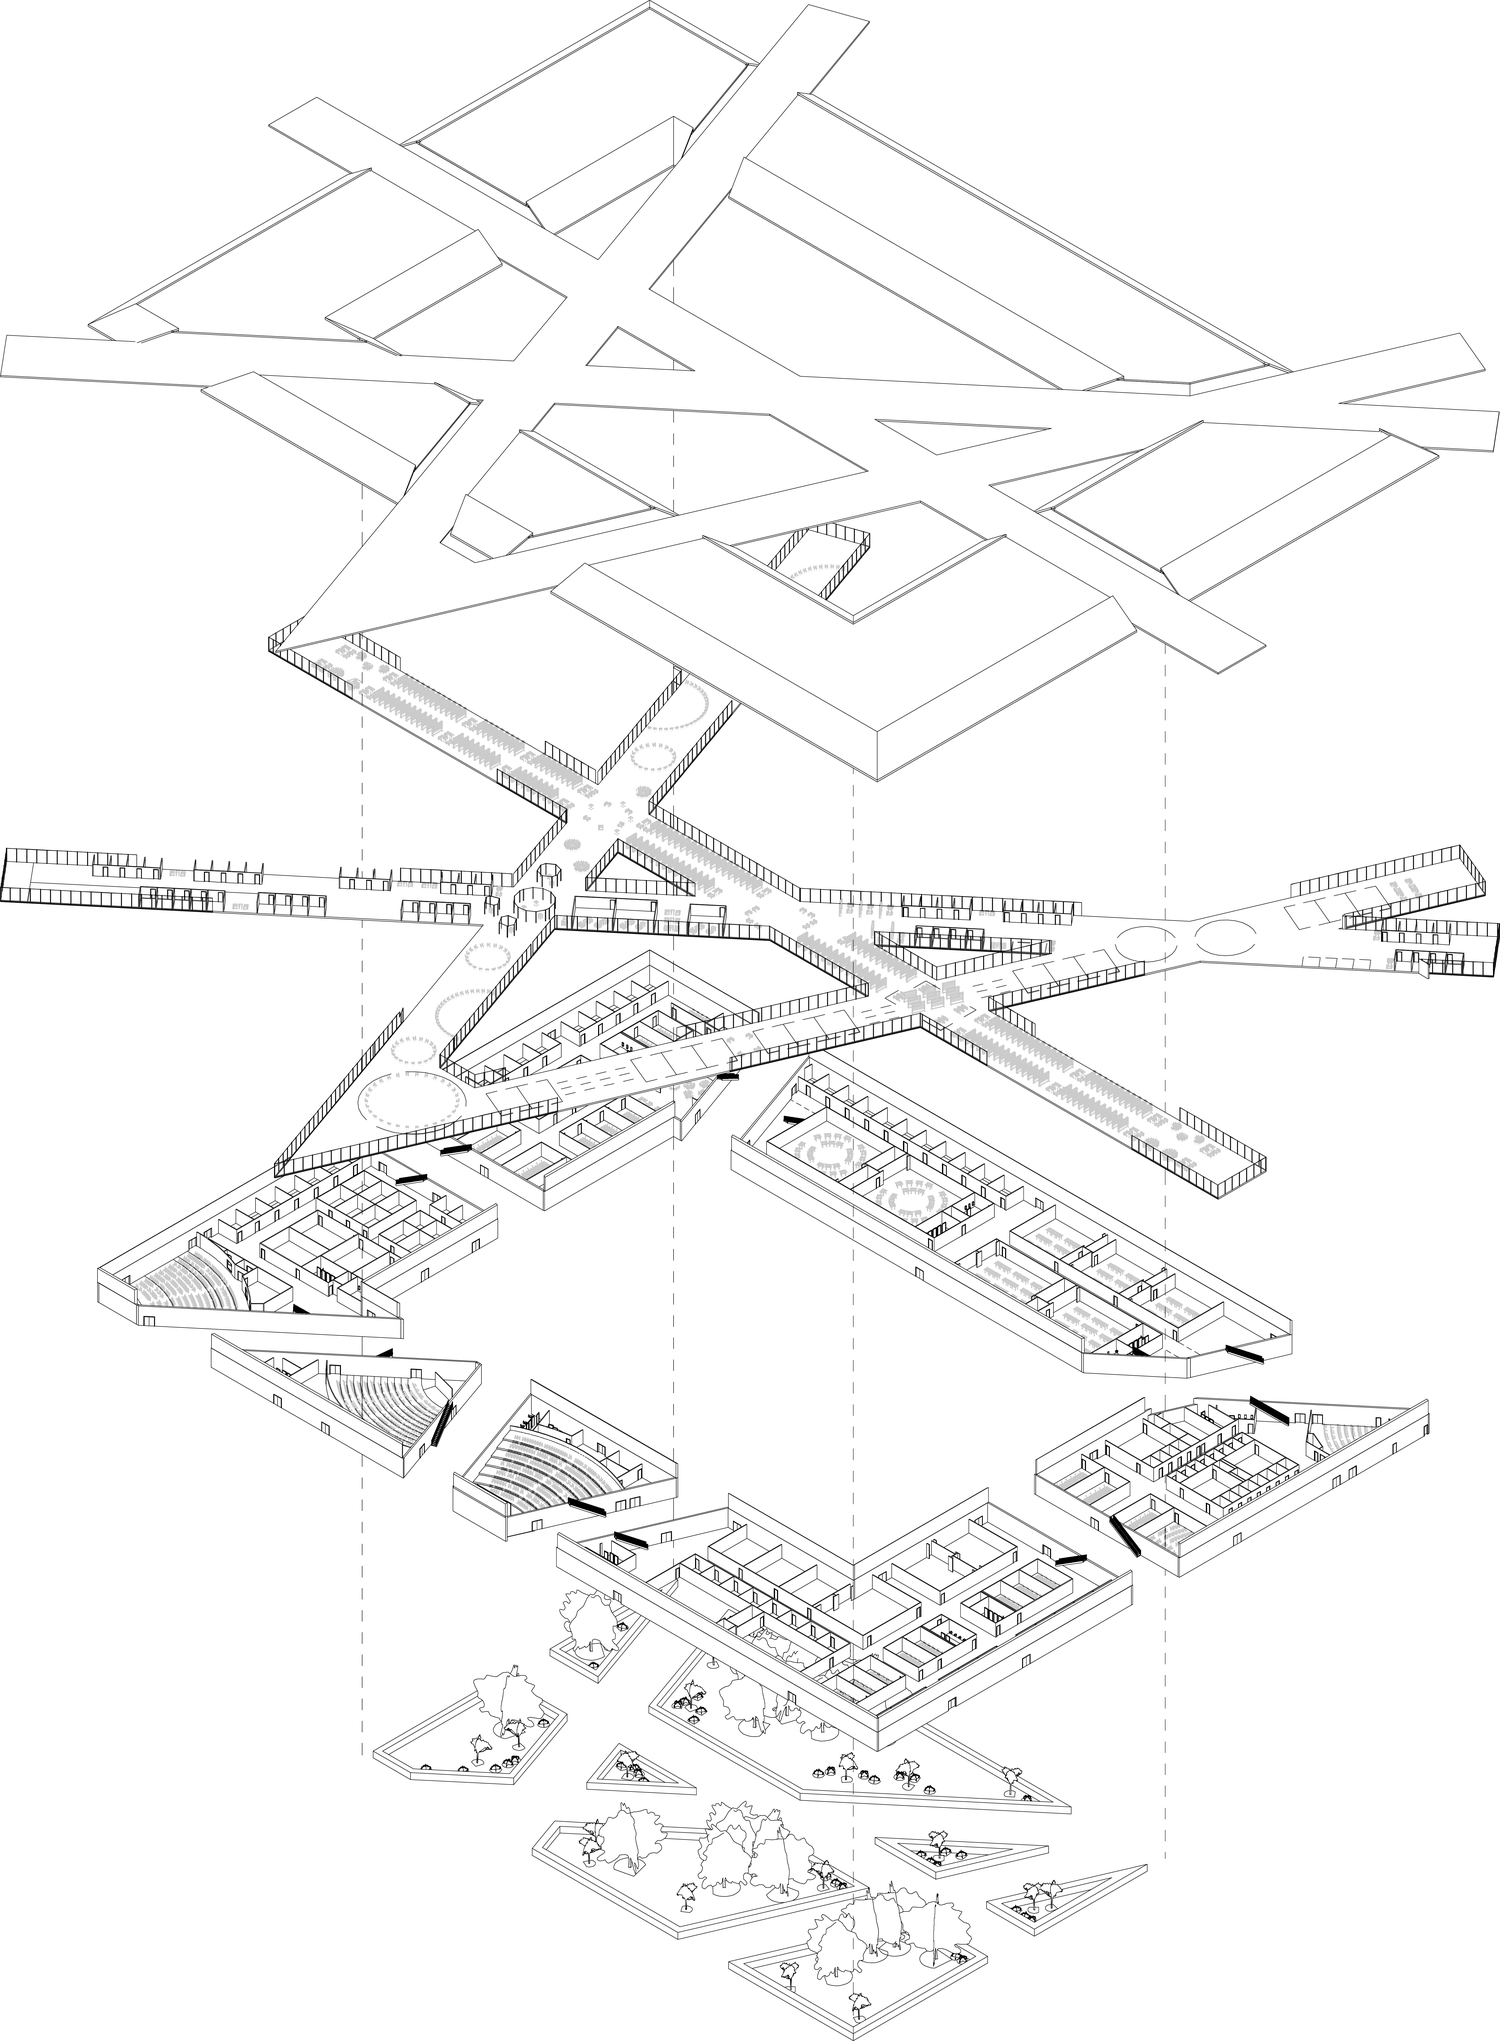 exploded axon diagram football x and o this axonometric works because they layers work